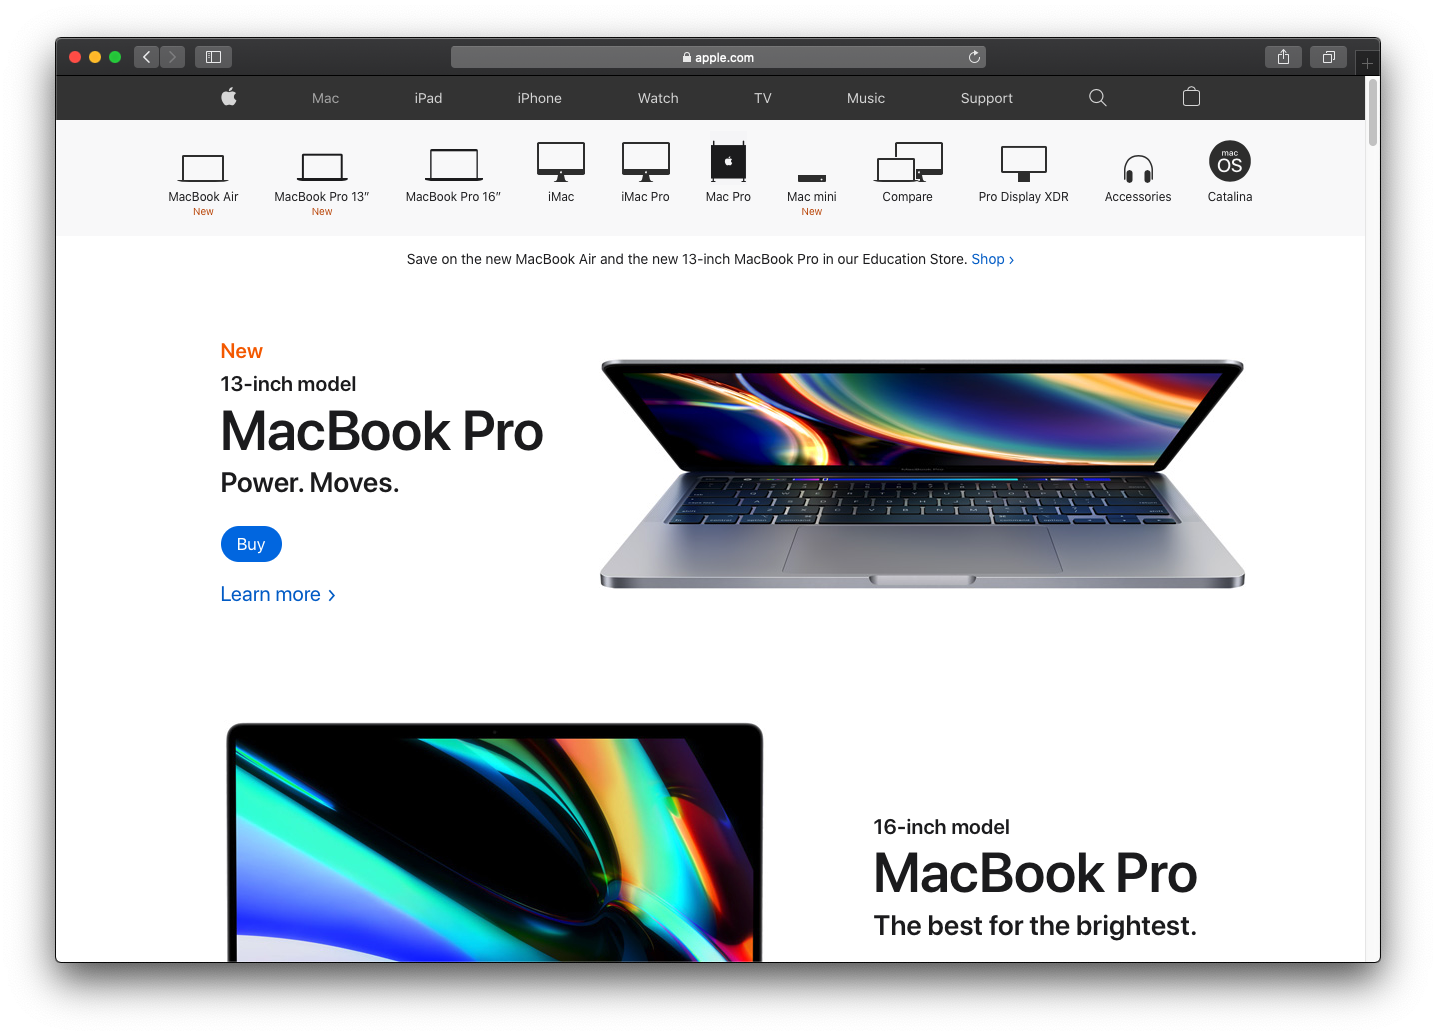 Apple's website leverages a taxonomy driven by product categories.